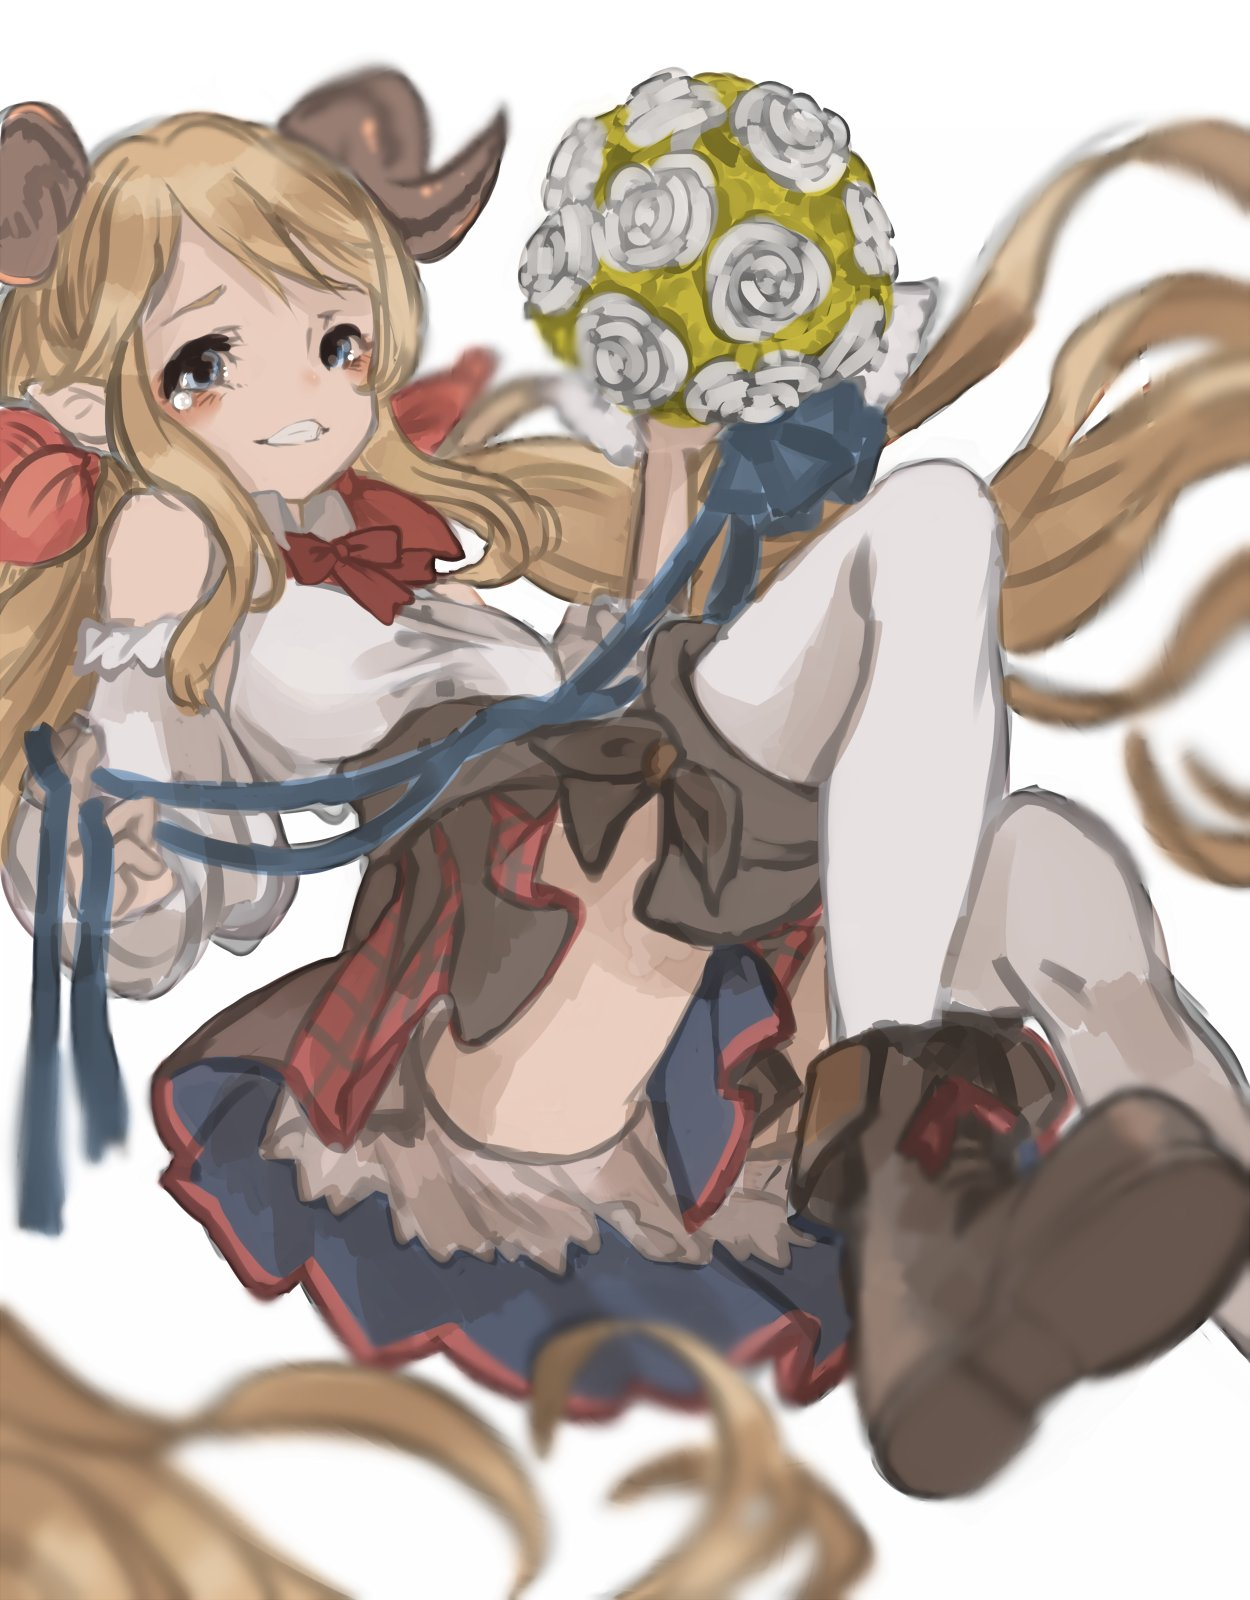 1girl adapted_costume ankle_boots blue_eyes blush boots brown_boots doraf granblue_fantasy hallessena highres horns long_hair miu_(minnncho) orange_hair plaid plaid_skirt pointy_ears red_skirt simple_background skirt solo tears thigh-highs very_long_hair white_background white_legwear